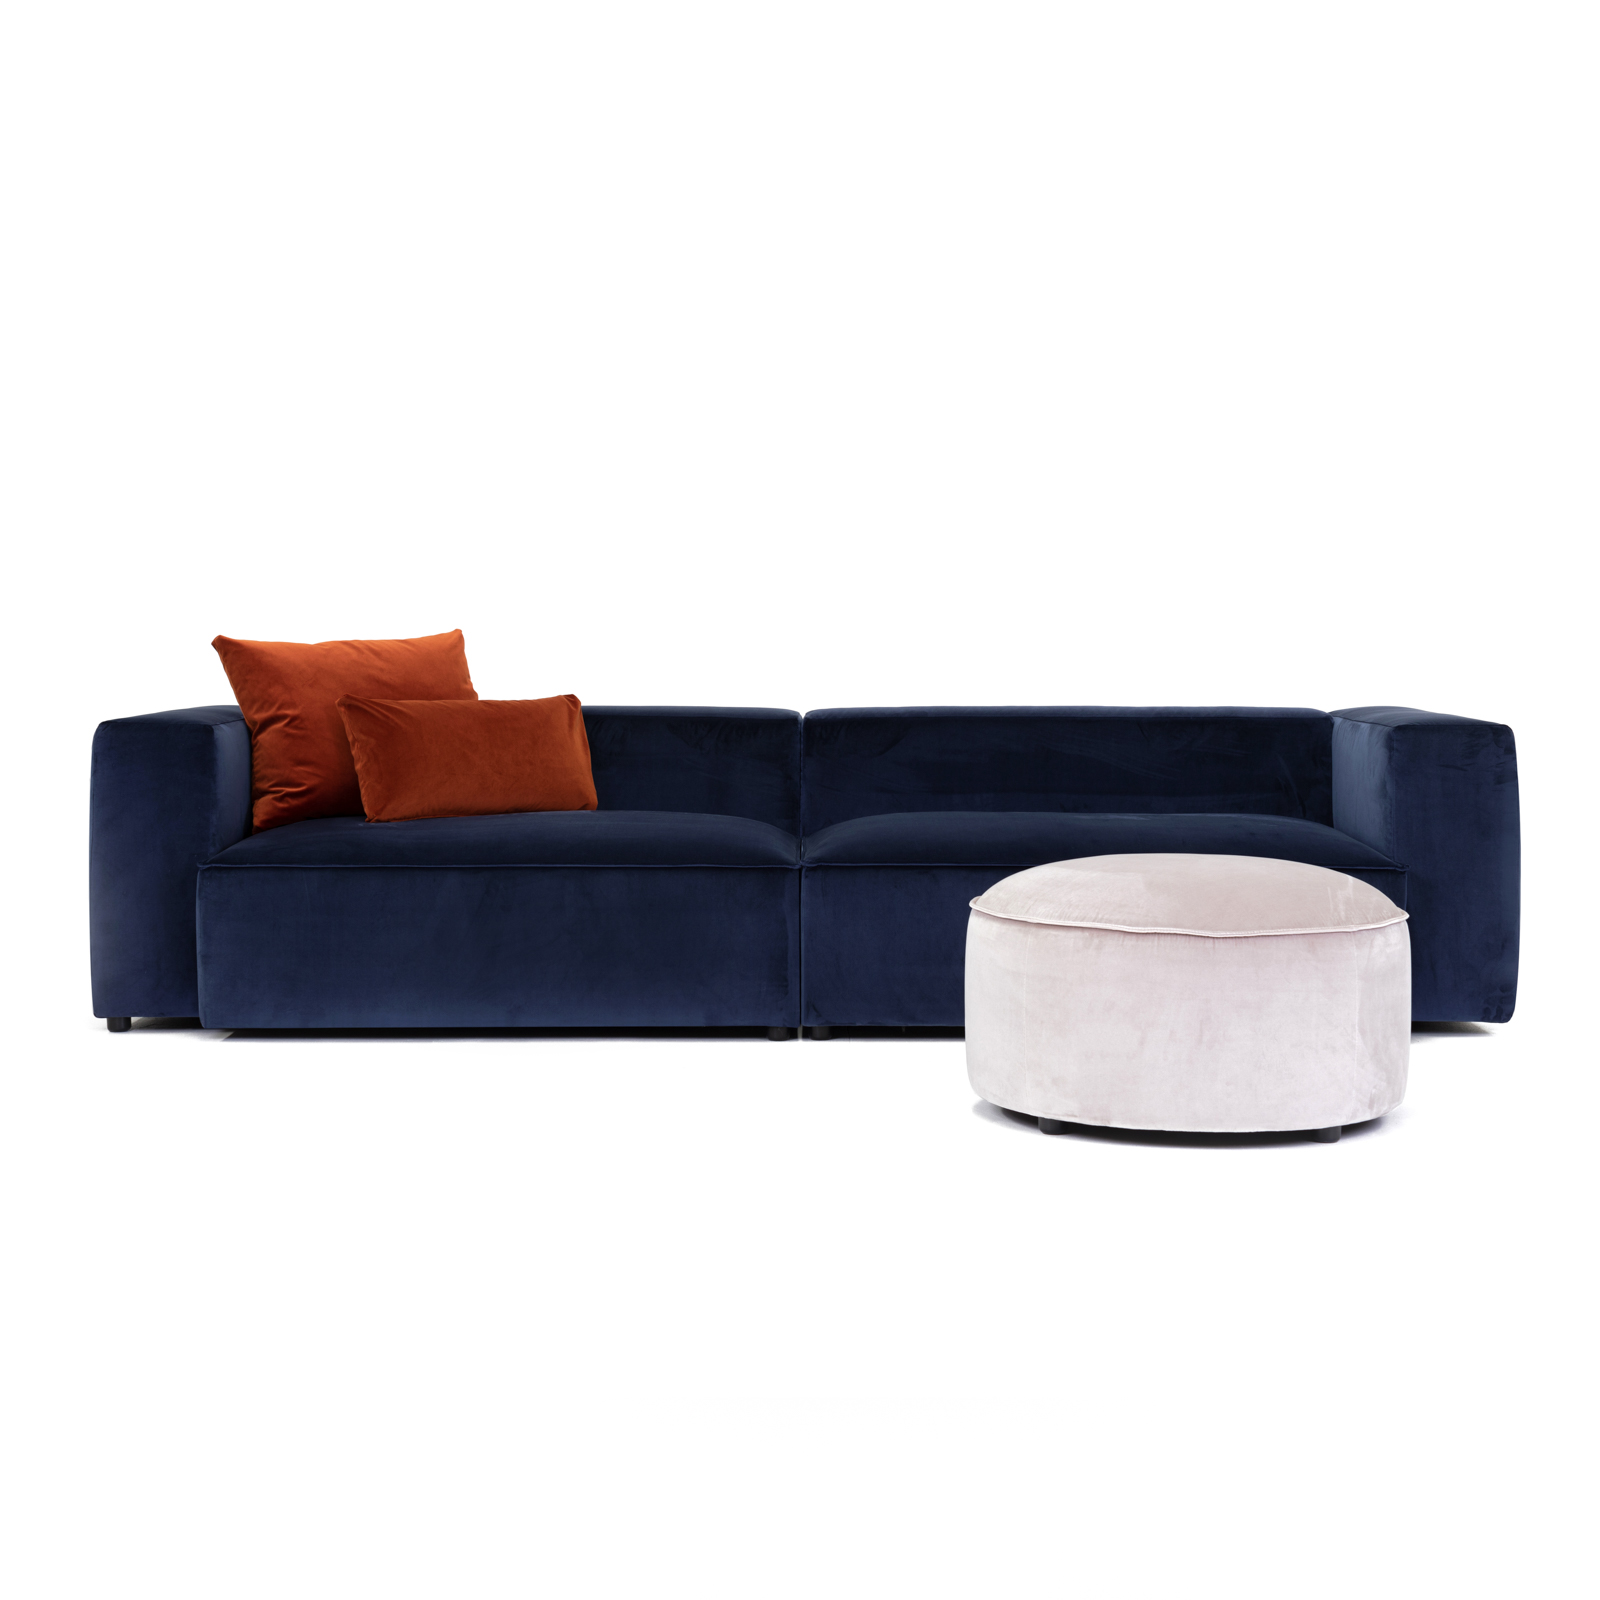 Permanent Future Easey Sofa 3.5 Seater Atelier Oxford Dream Ottoman Luxury Cushions Pf Sf Ea 3.5 Ao Front View